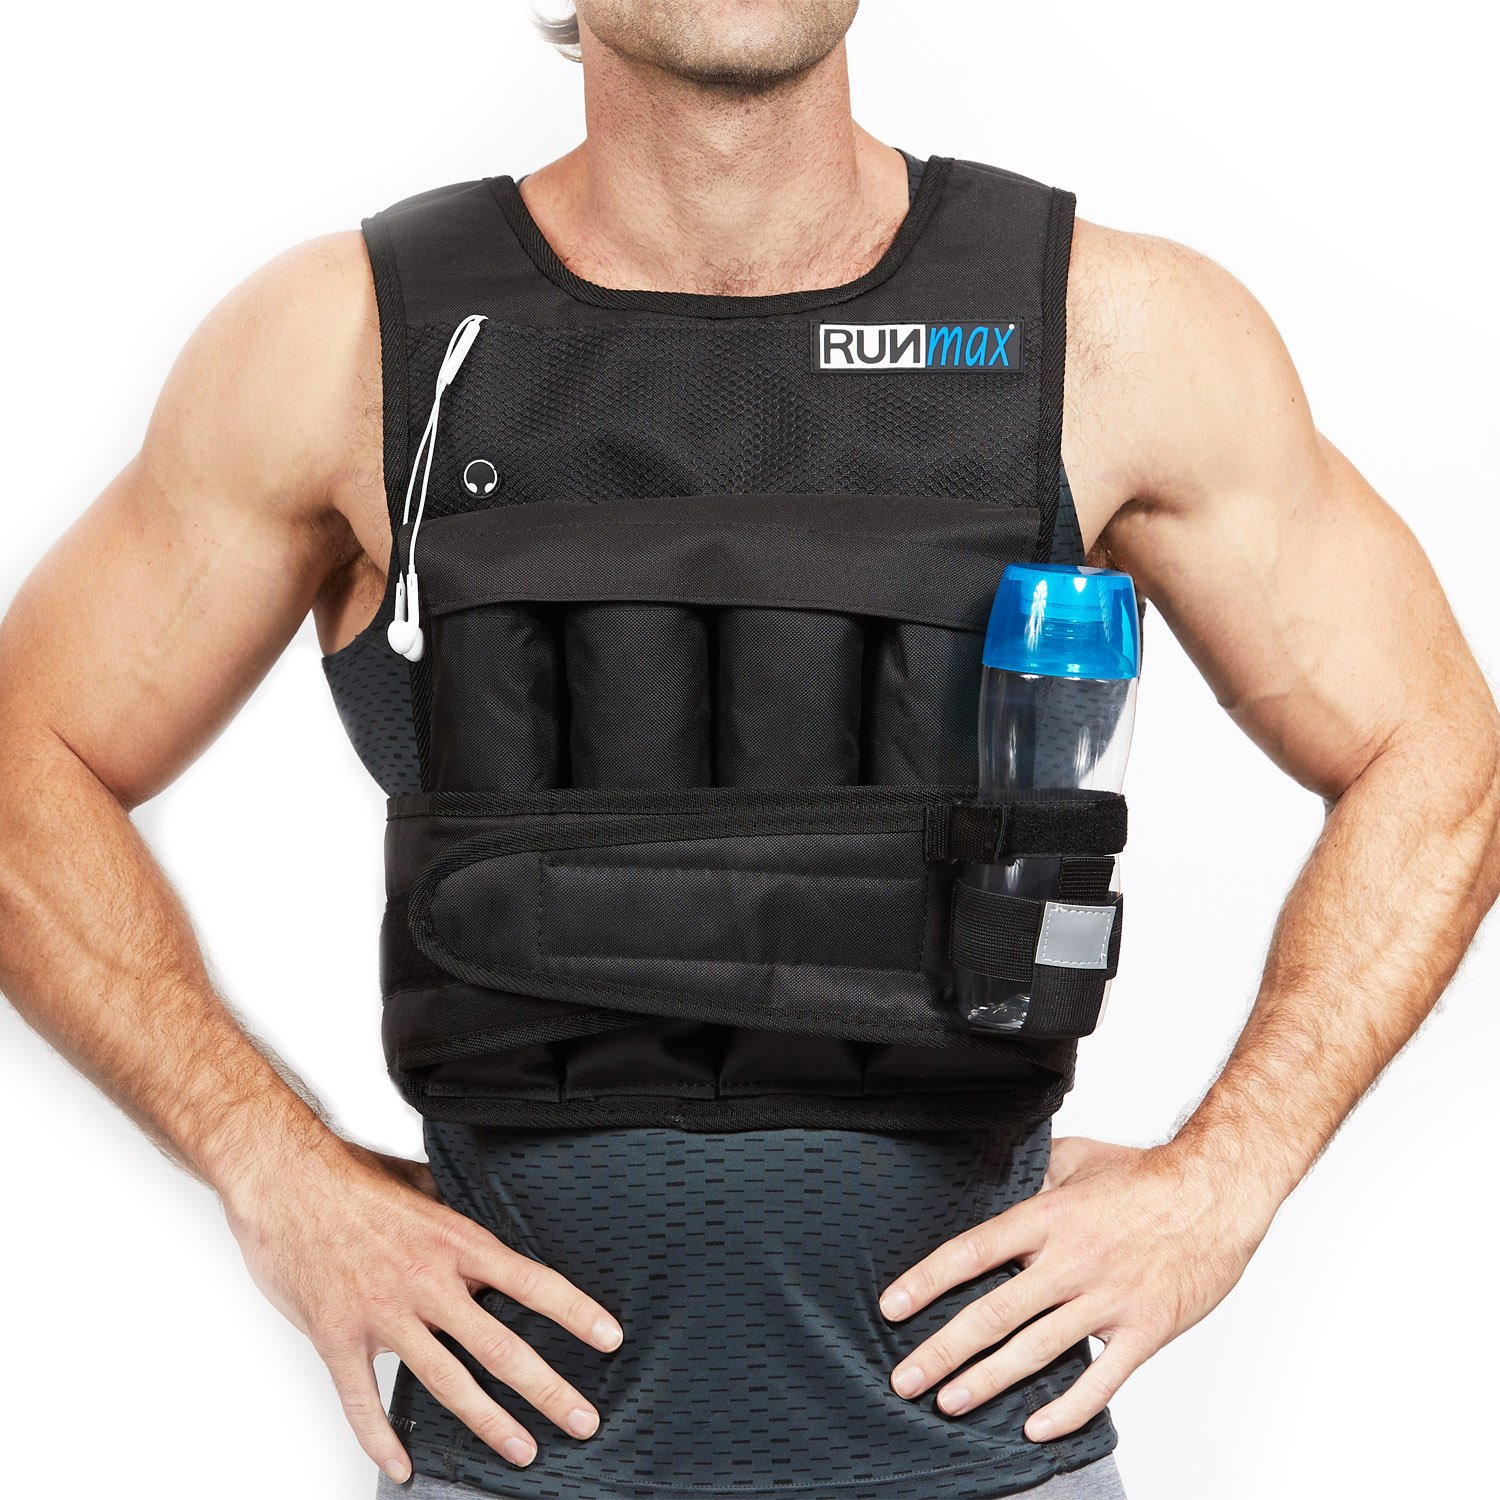 RUNmax RUNFast RM_20 Pro Weighted Vest, 20 lb. by RUNmax (Image #3)